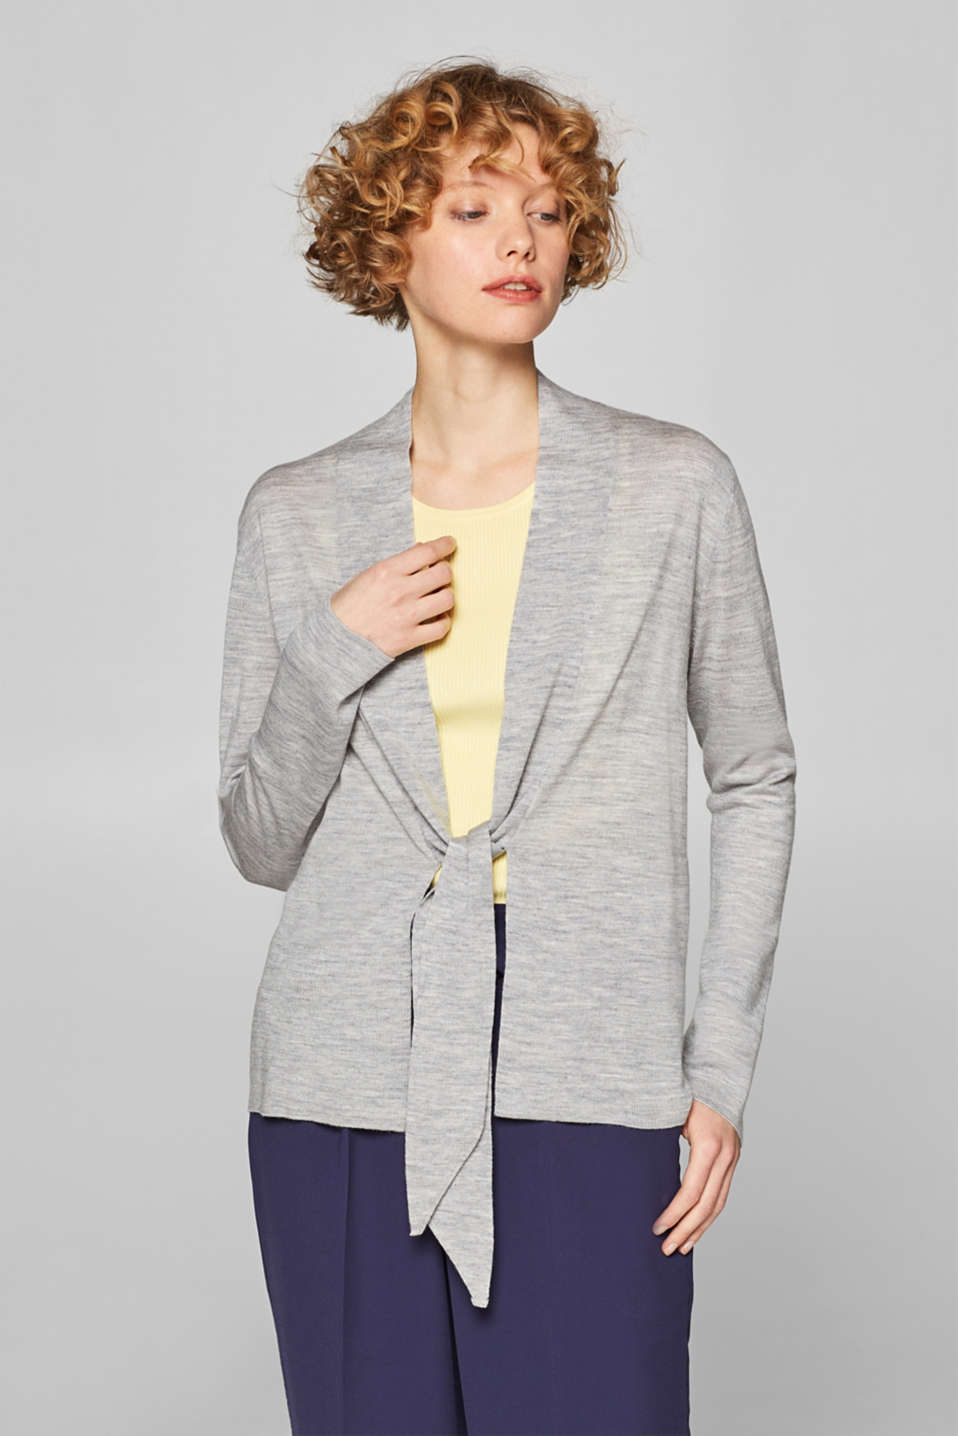 Esprit - Made of blended wool: cardigan with drawstring ties